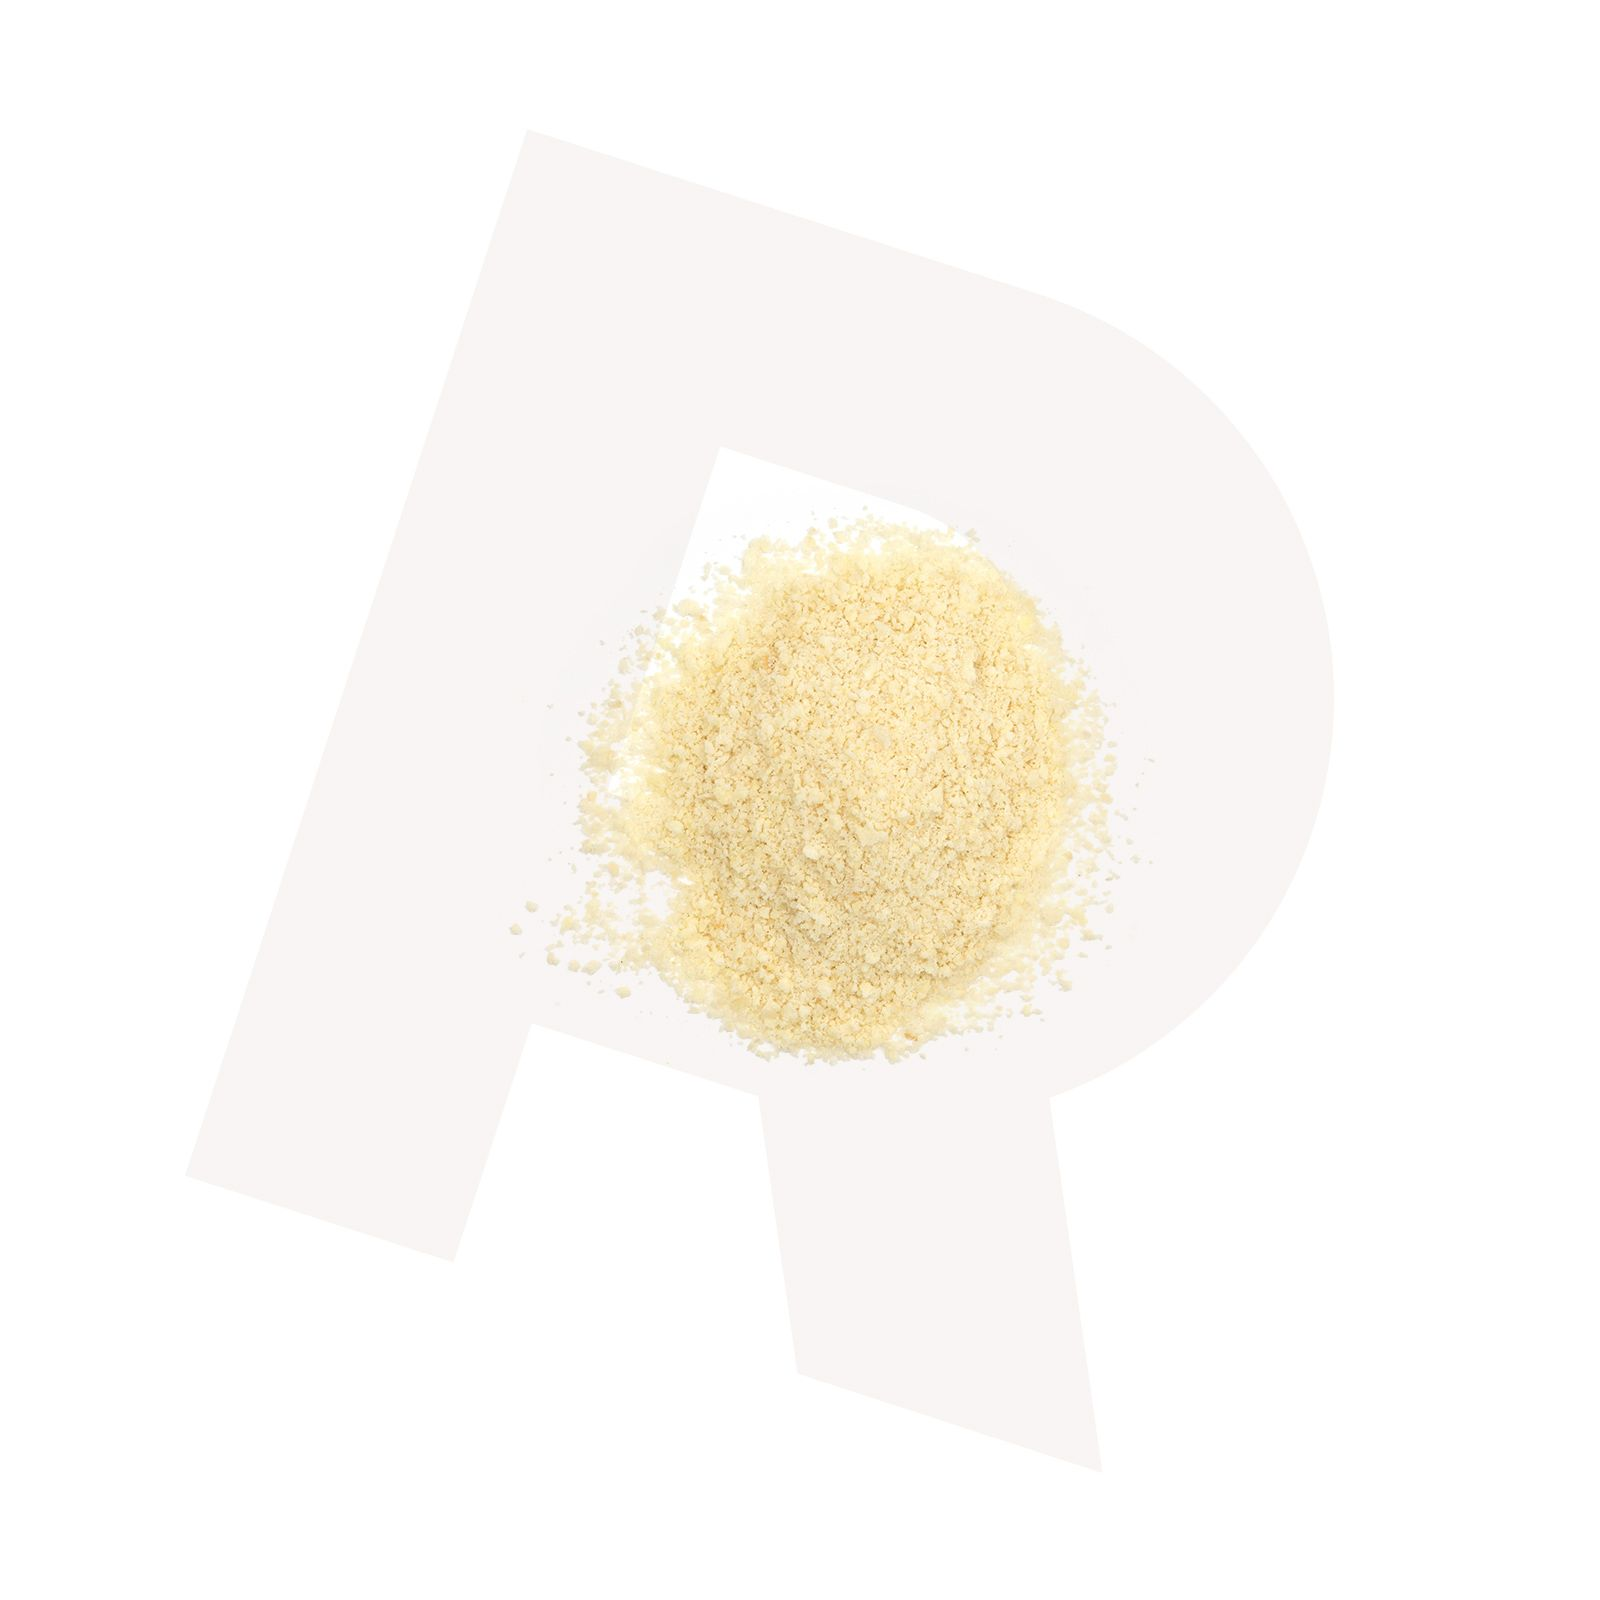 Almonds_almond-powder-white